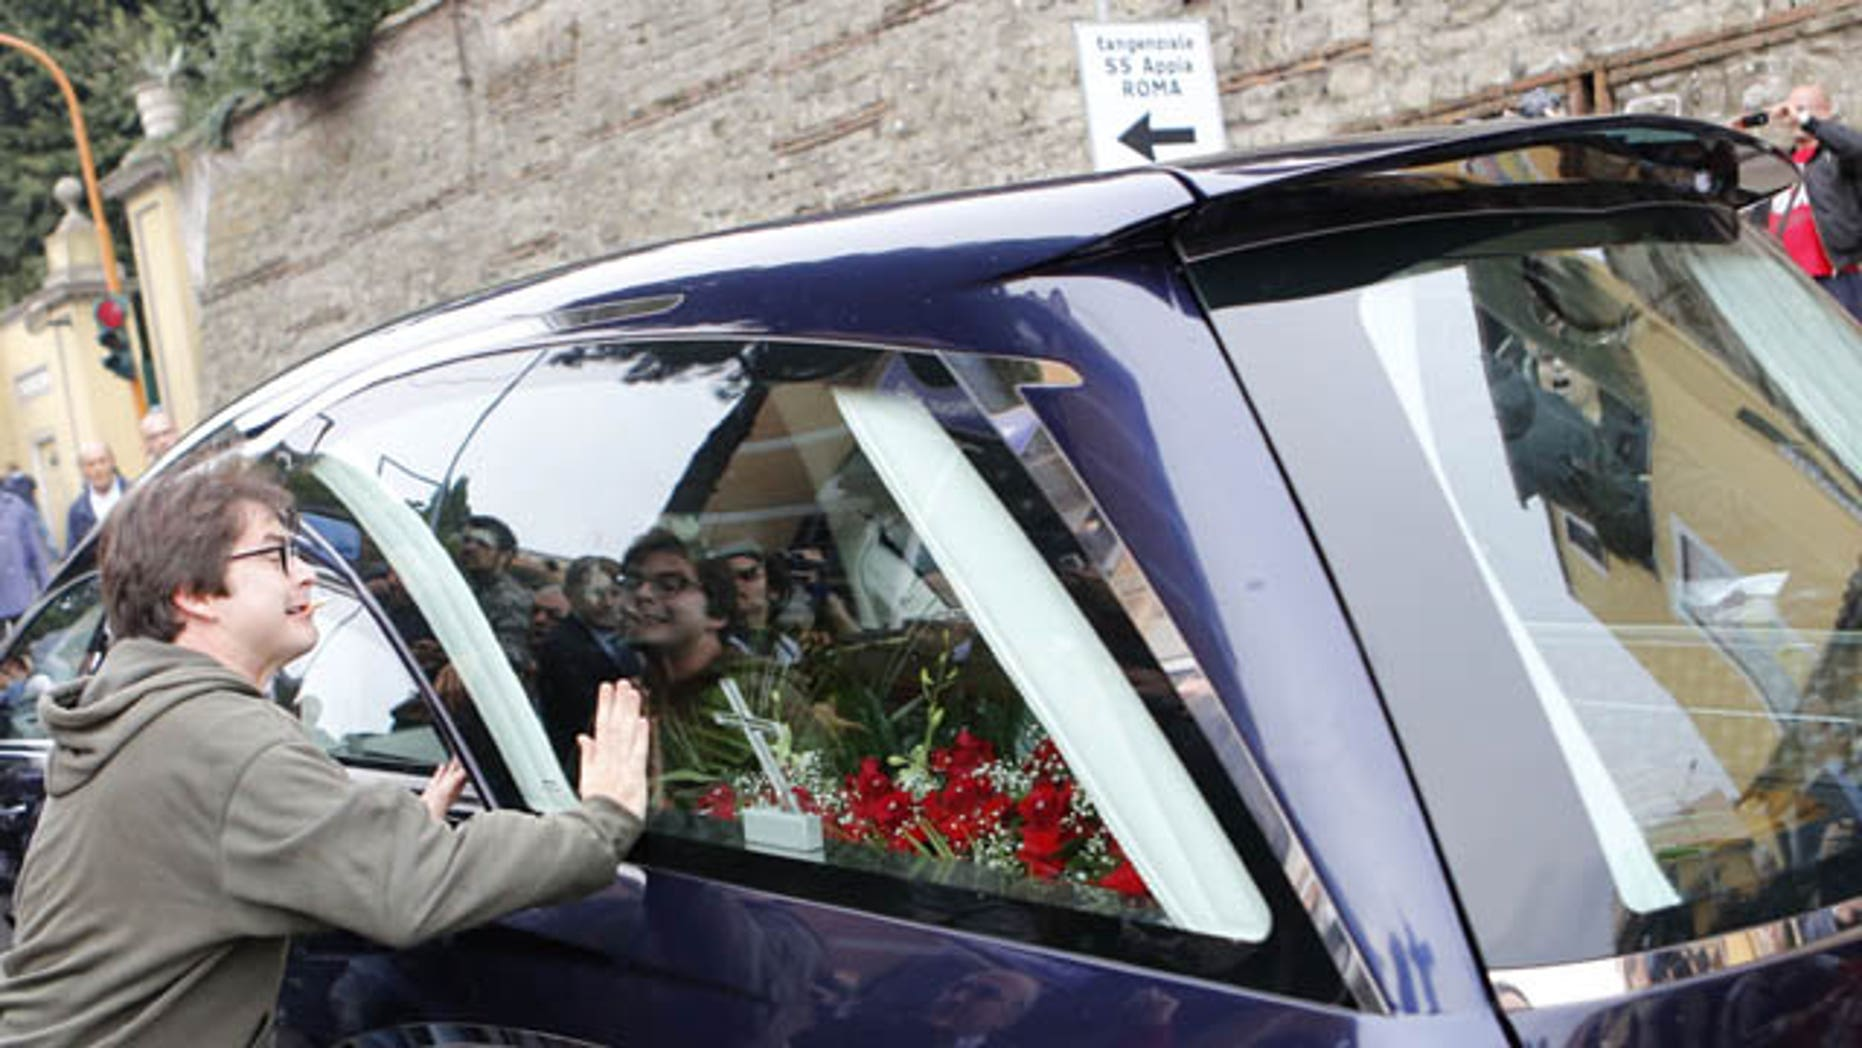 October 15, 2013: A protester bangs his hands on the hearse carrying the coffin of Nazi war criminal Erich Priebke as it arrives at the Society of St. Pius X, a schismatic Catholic group, in Albano Laziale, on the outskirts of Rome Tuesday.